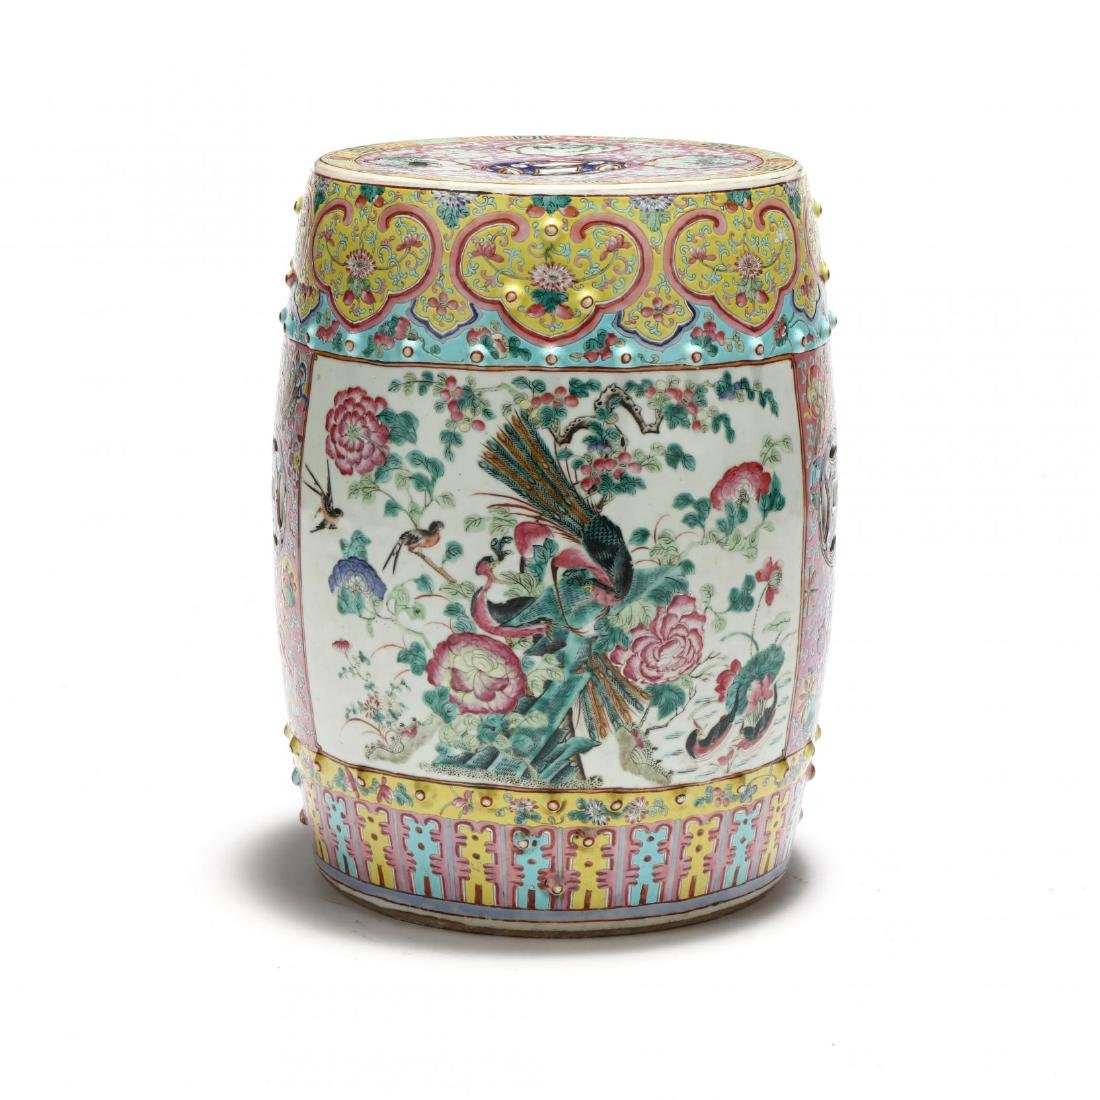 A Chinese Famille Rose Drum Garden Stool - 4